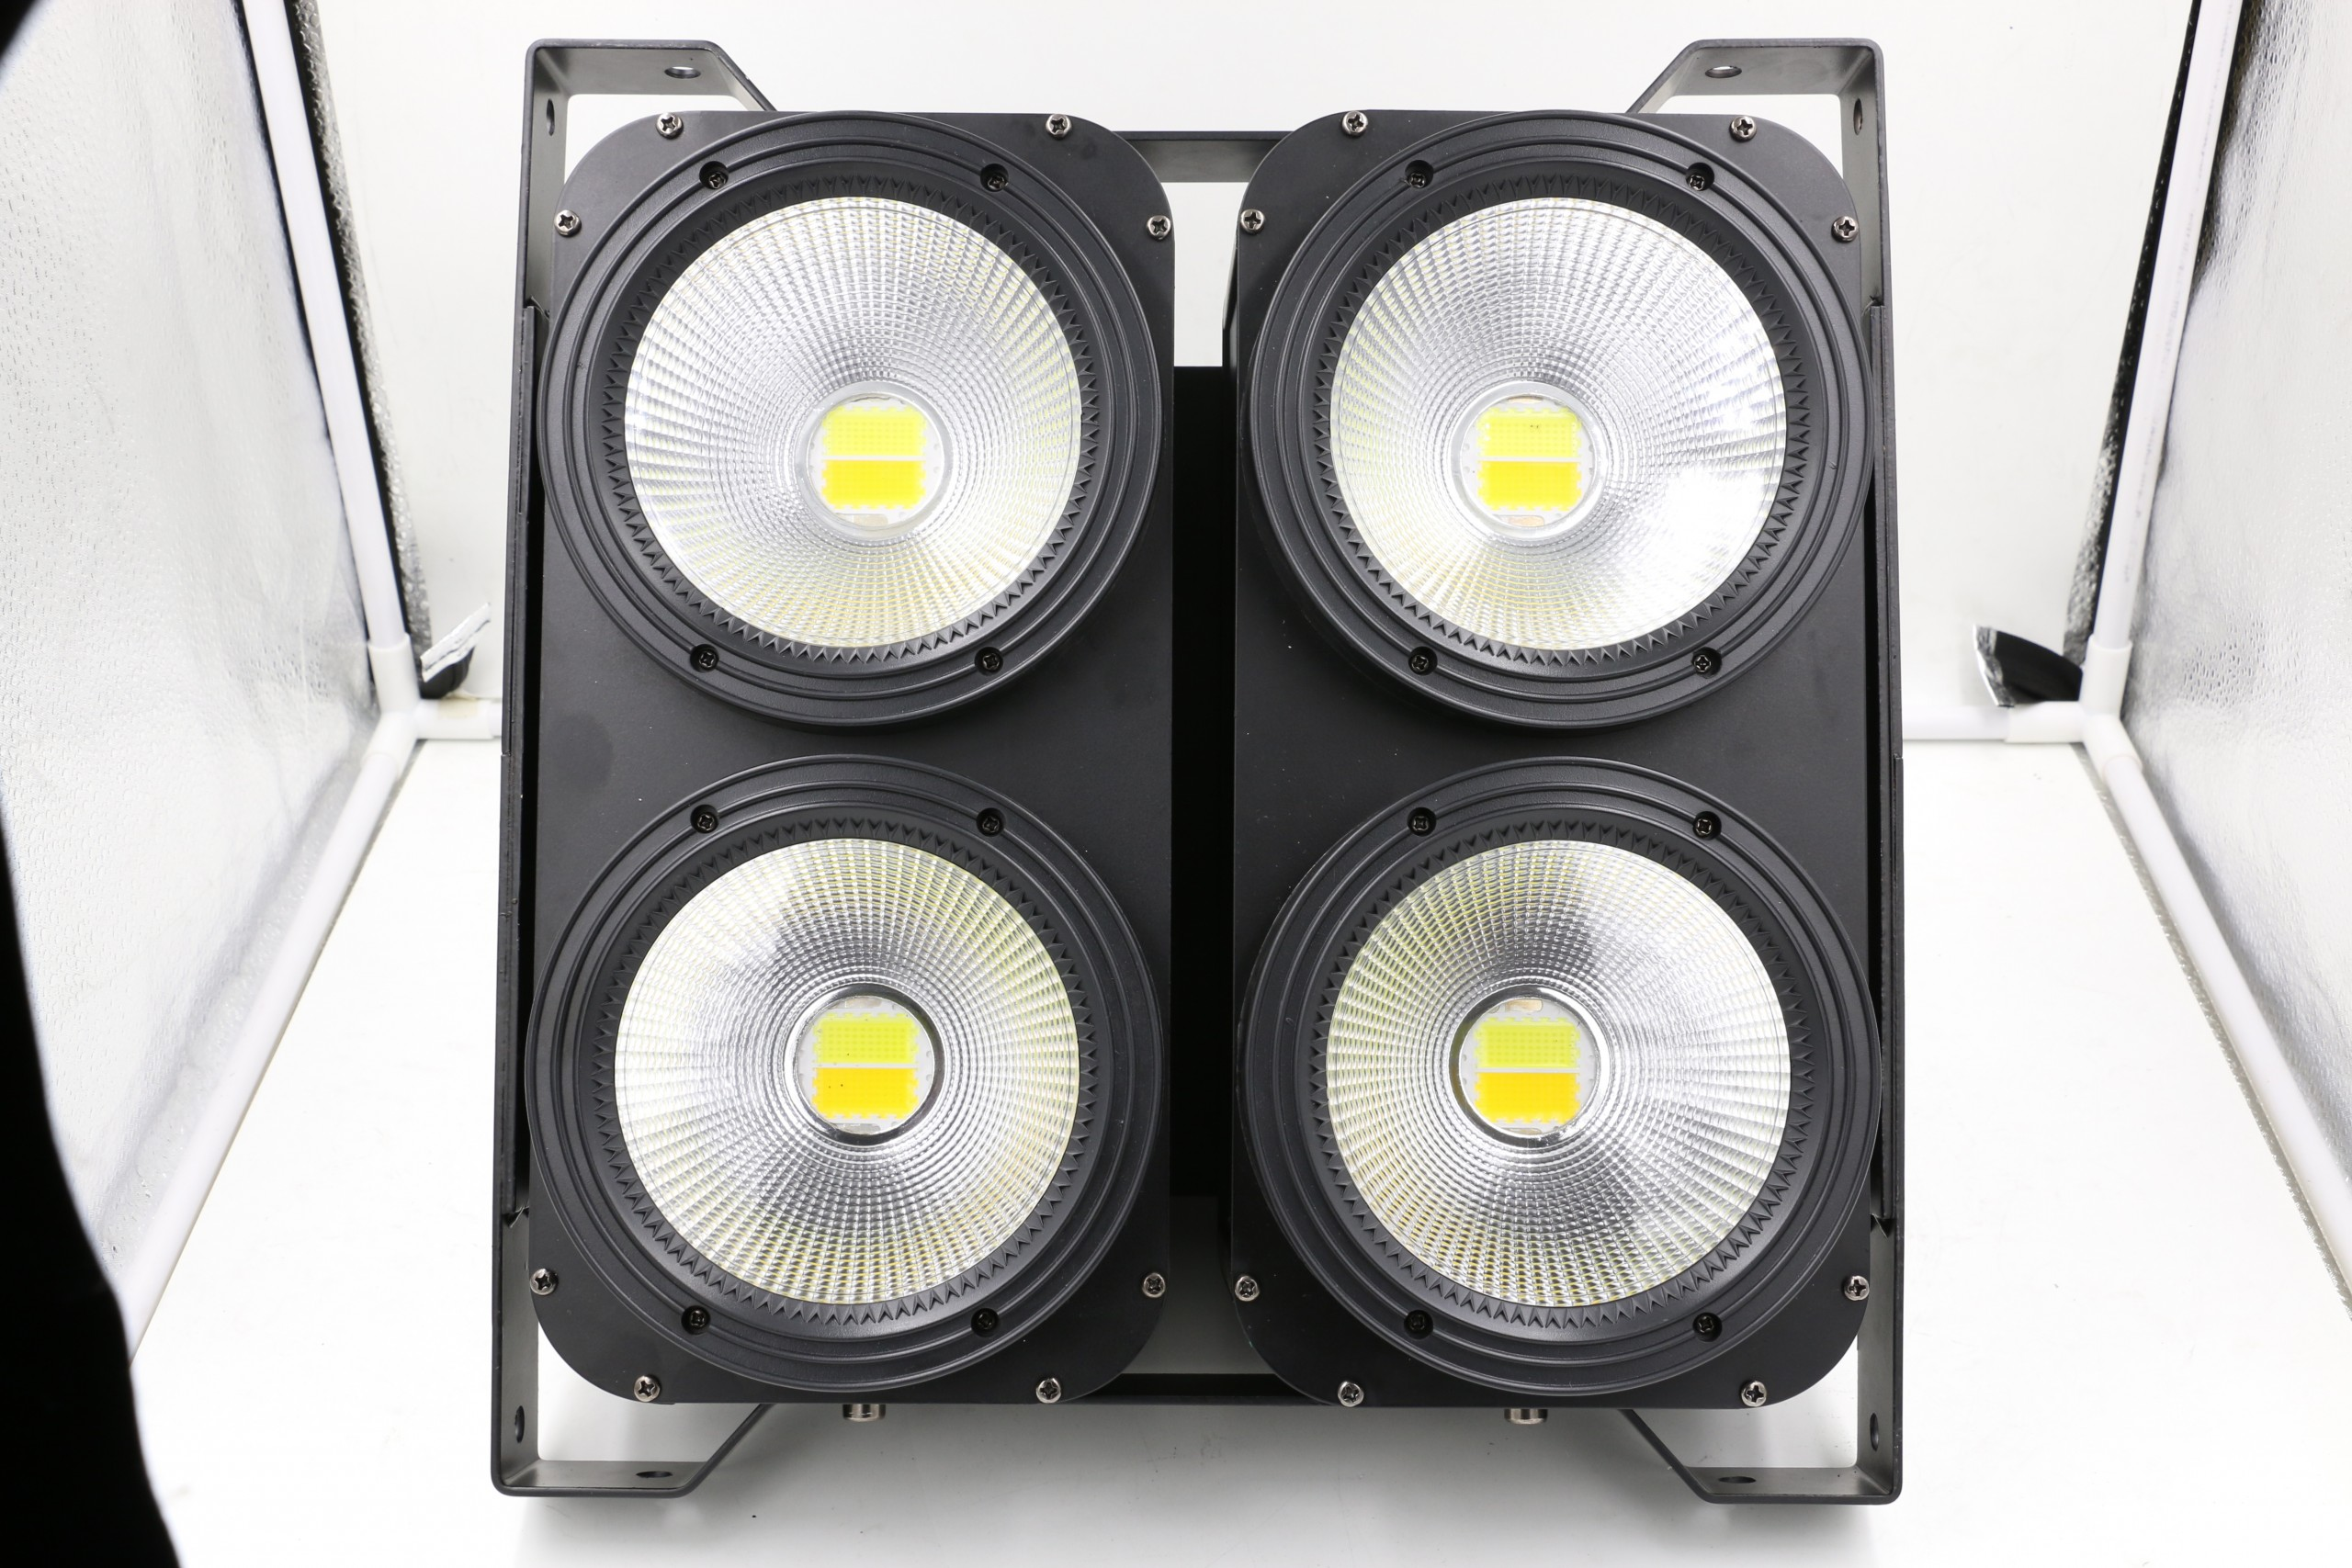 400W Audience Light 4 Eye 4x100w Cob Led Blinder Light